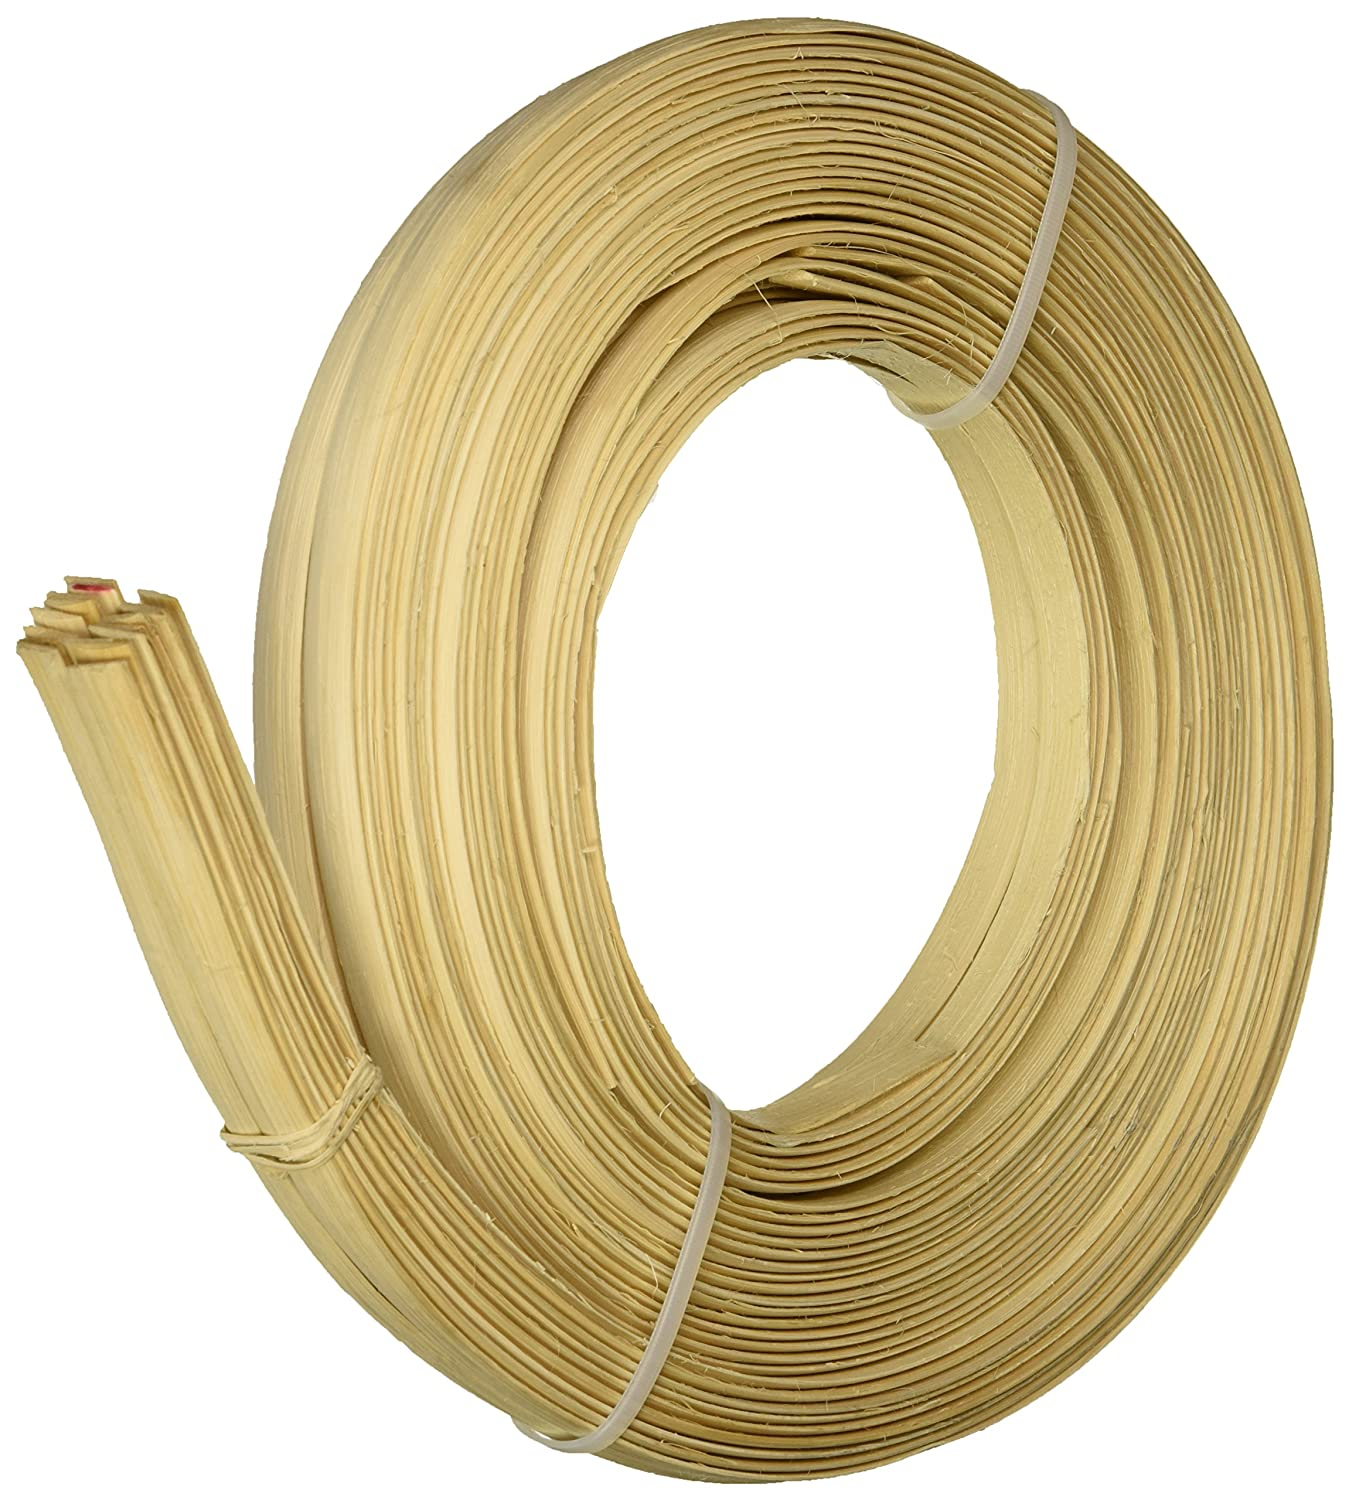 Commonwealth Basket Flat Oval Reed 1/2-Inch 1-Pound Coil, Approximately, 90-Feet 12FOC